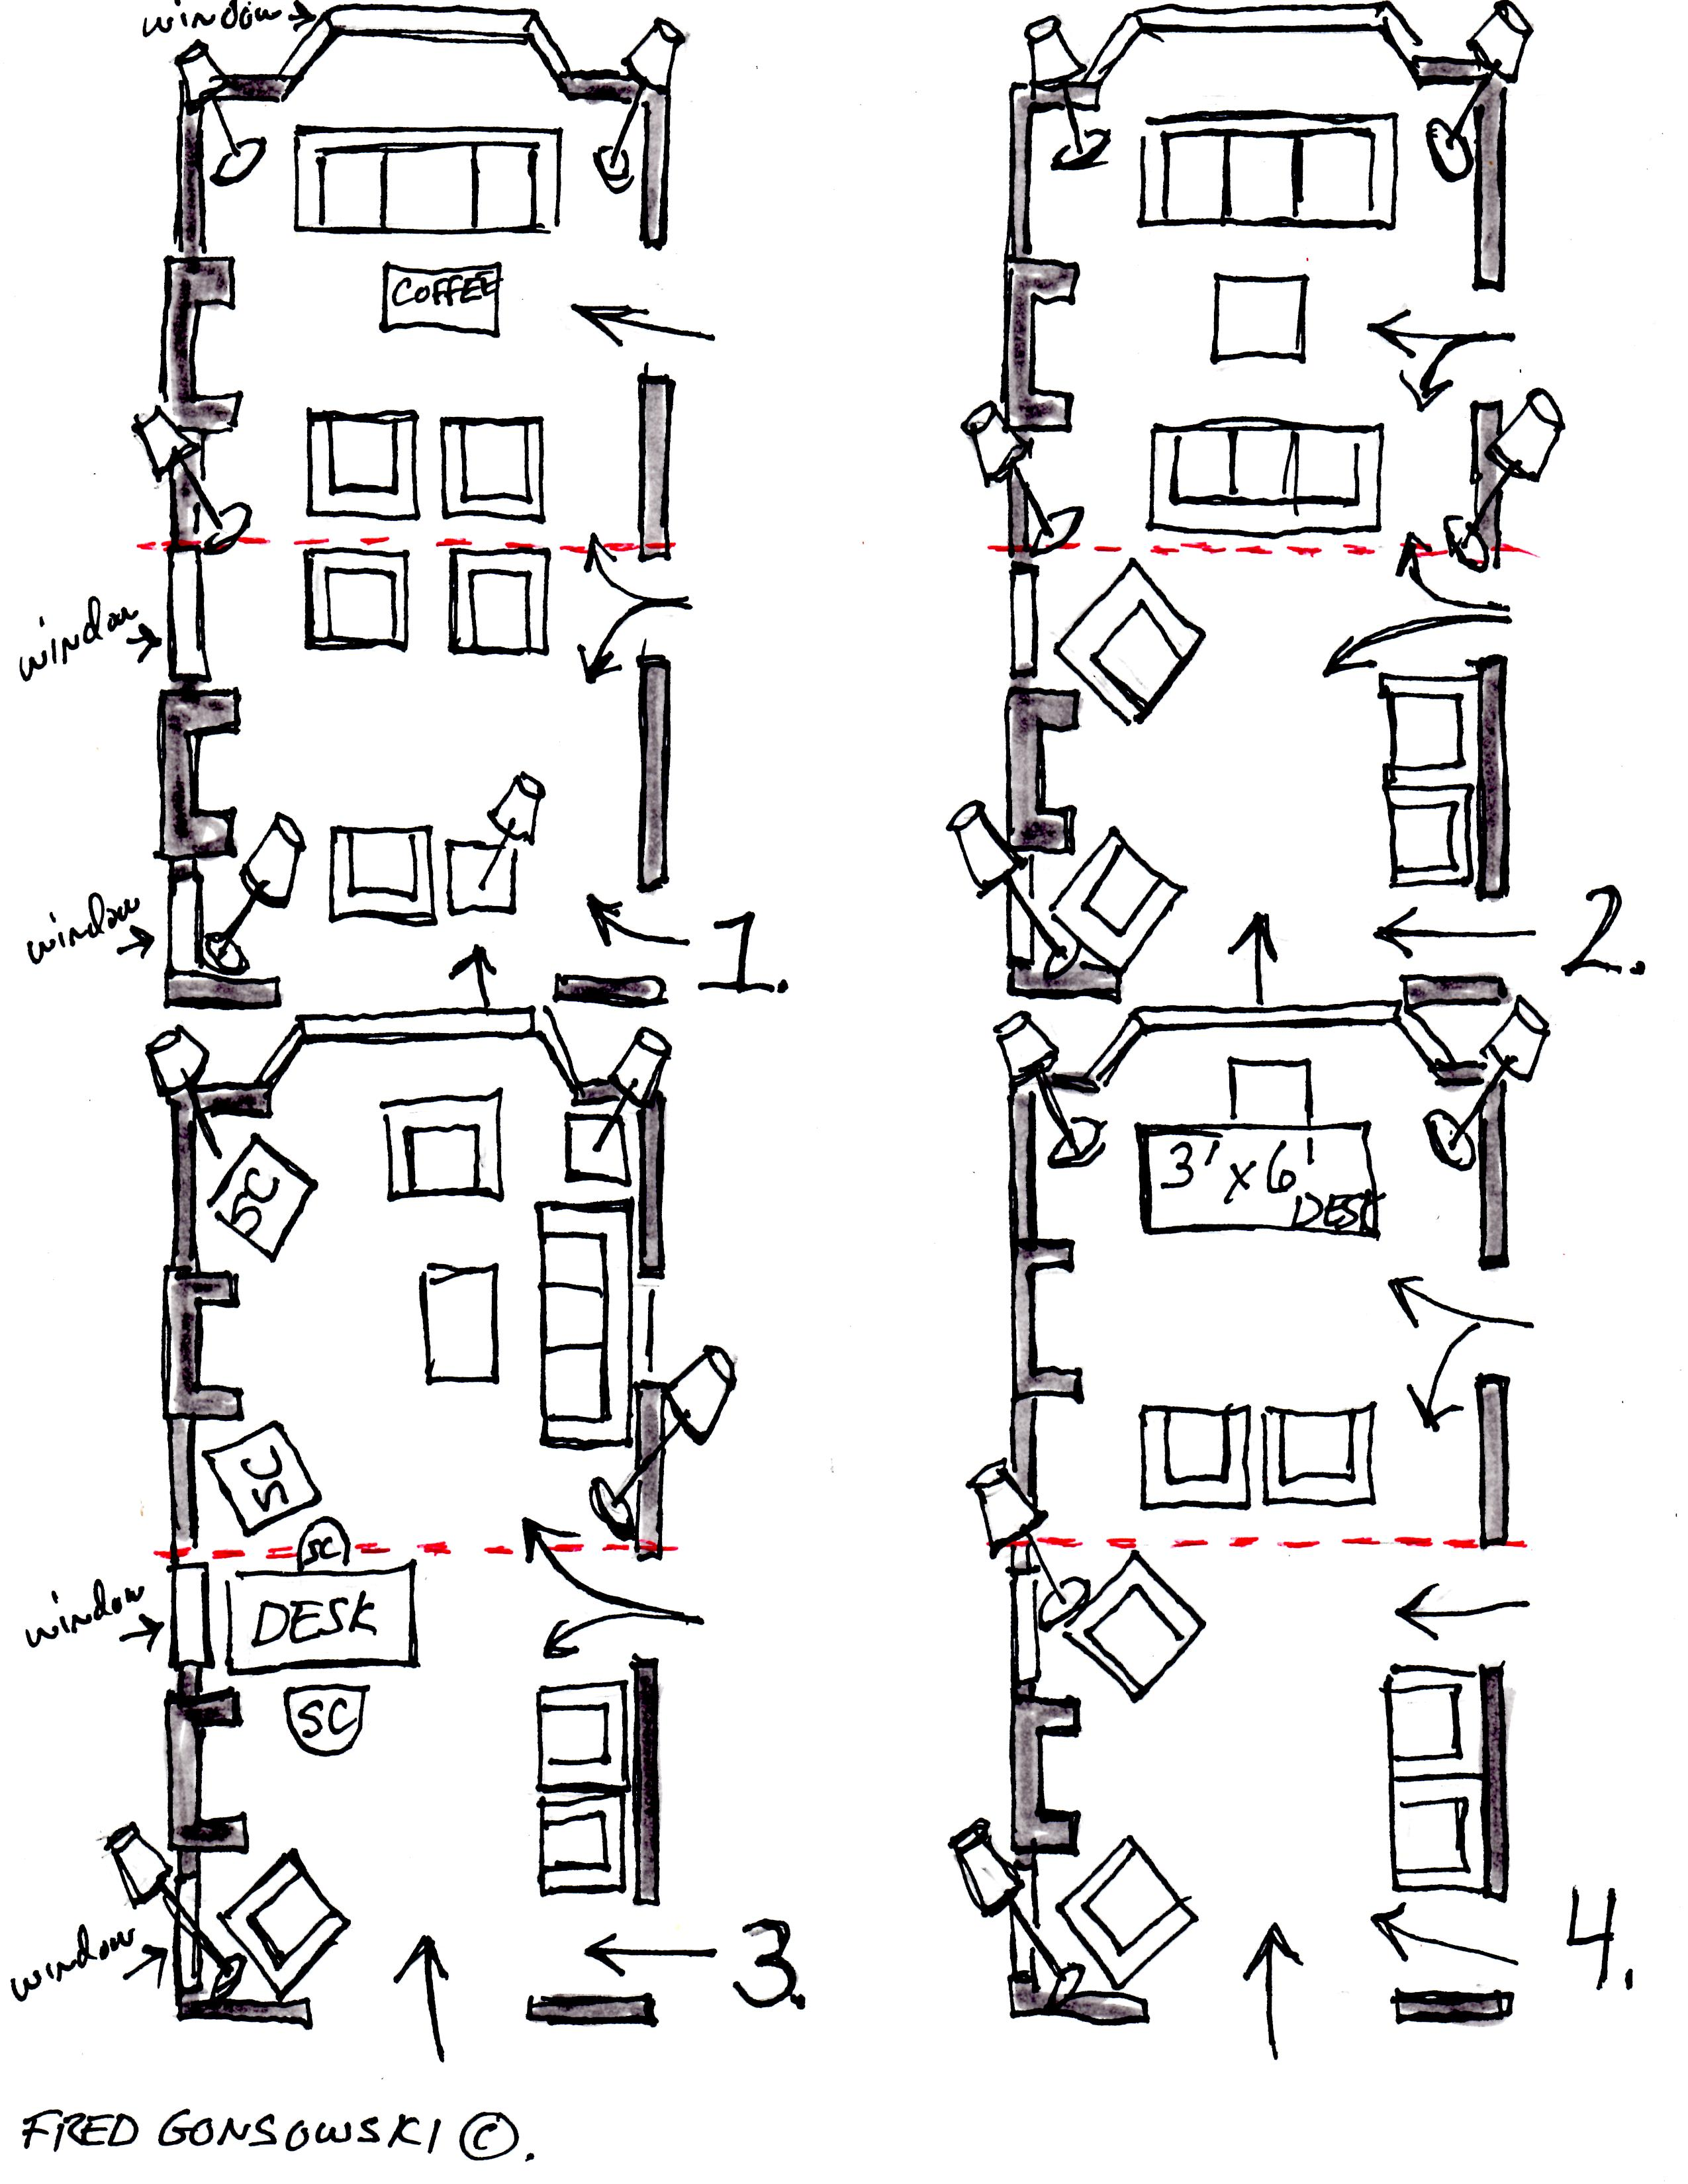 how to arrange furniture in a long narrow living room design arrangements arranging 12 foot wide by 24 now let s look at the illustrations img354